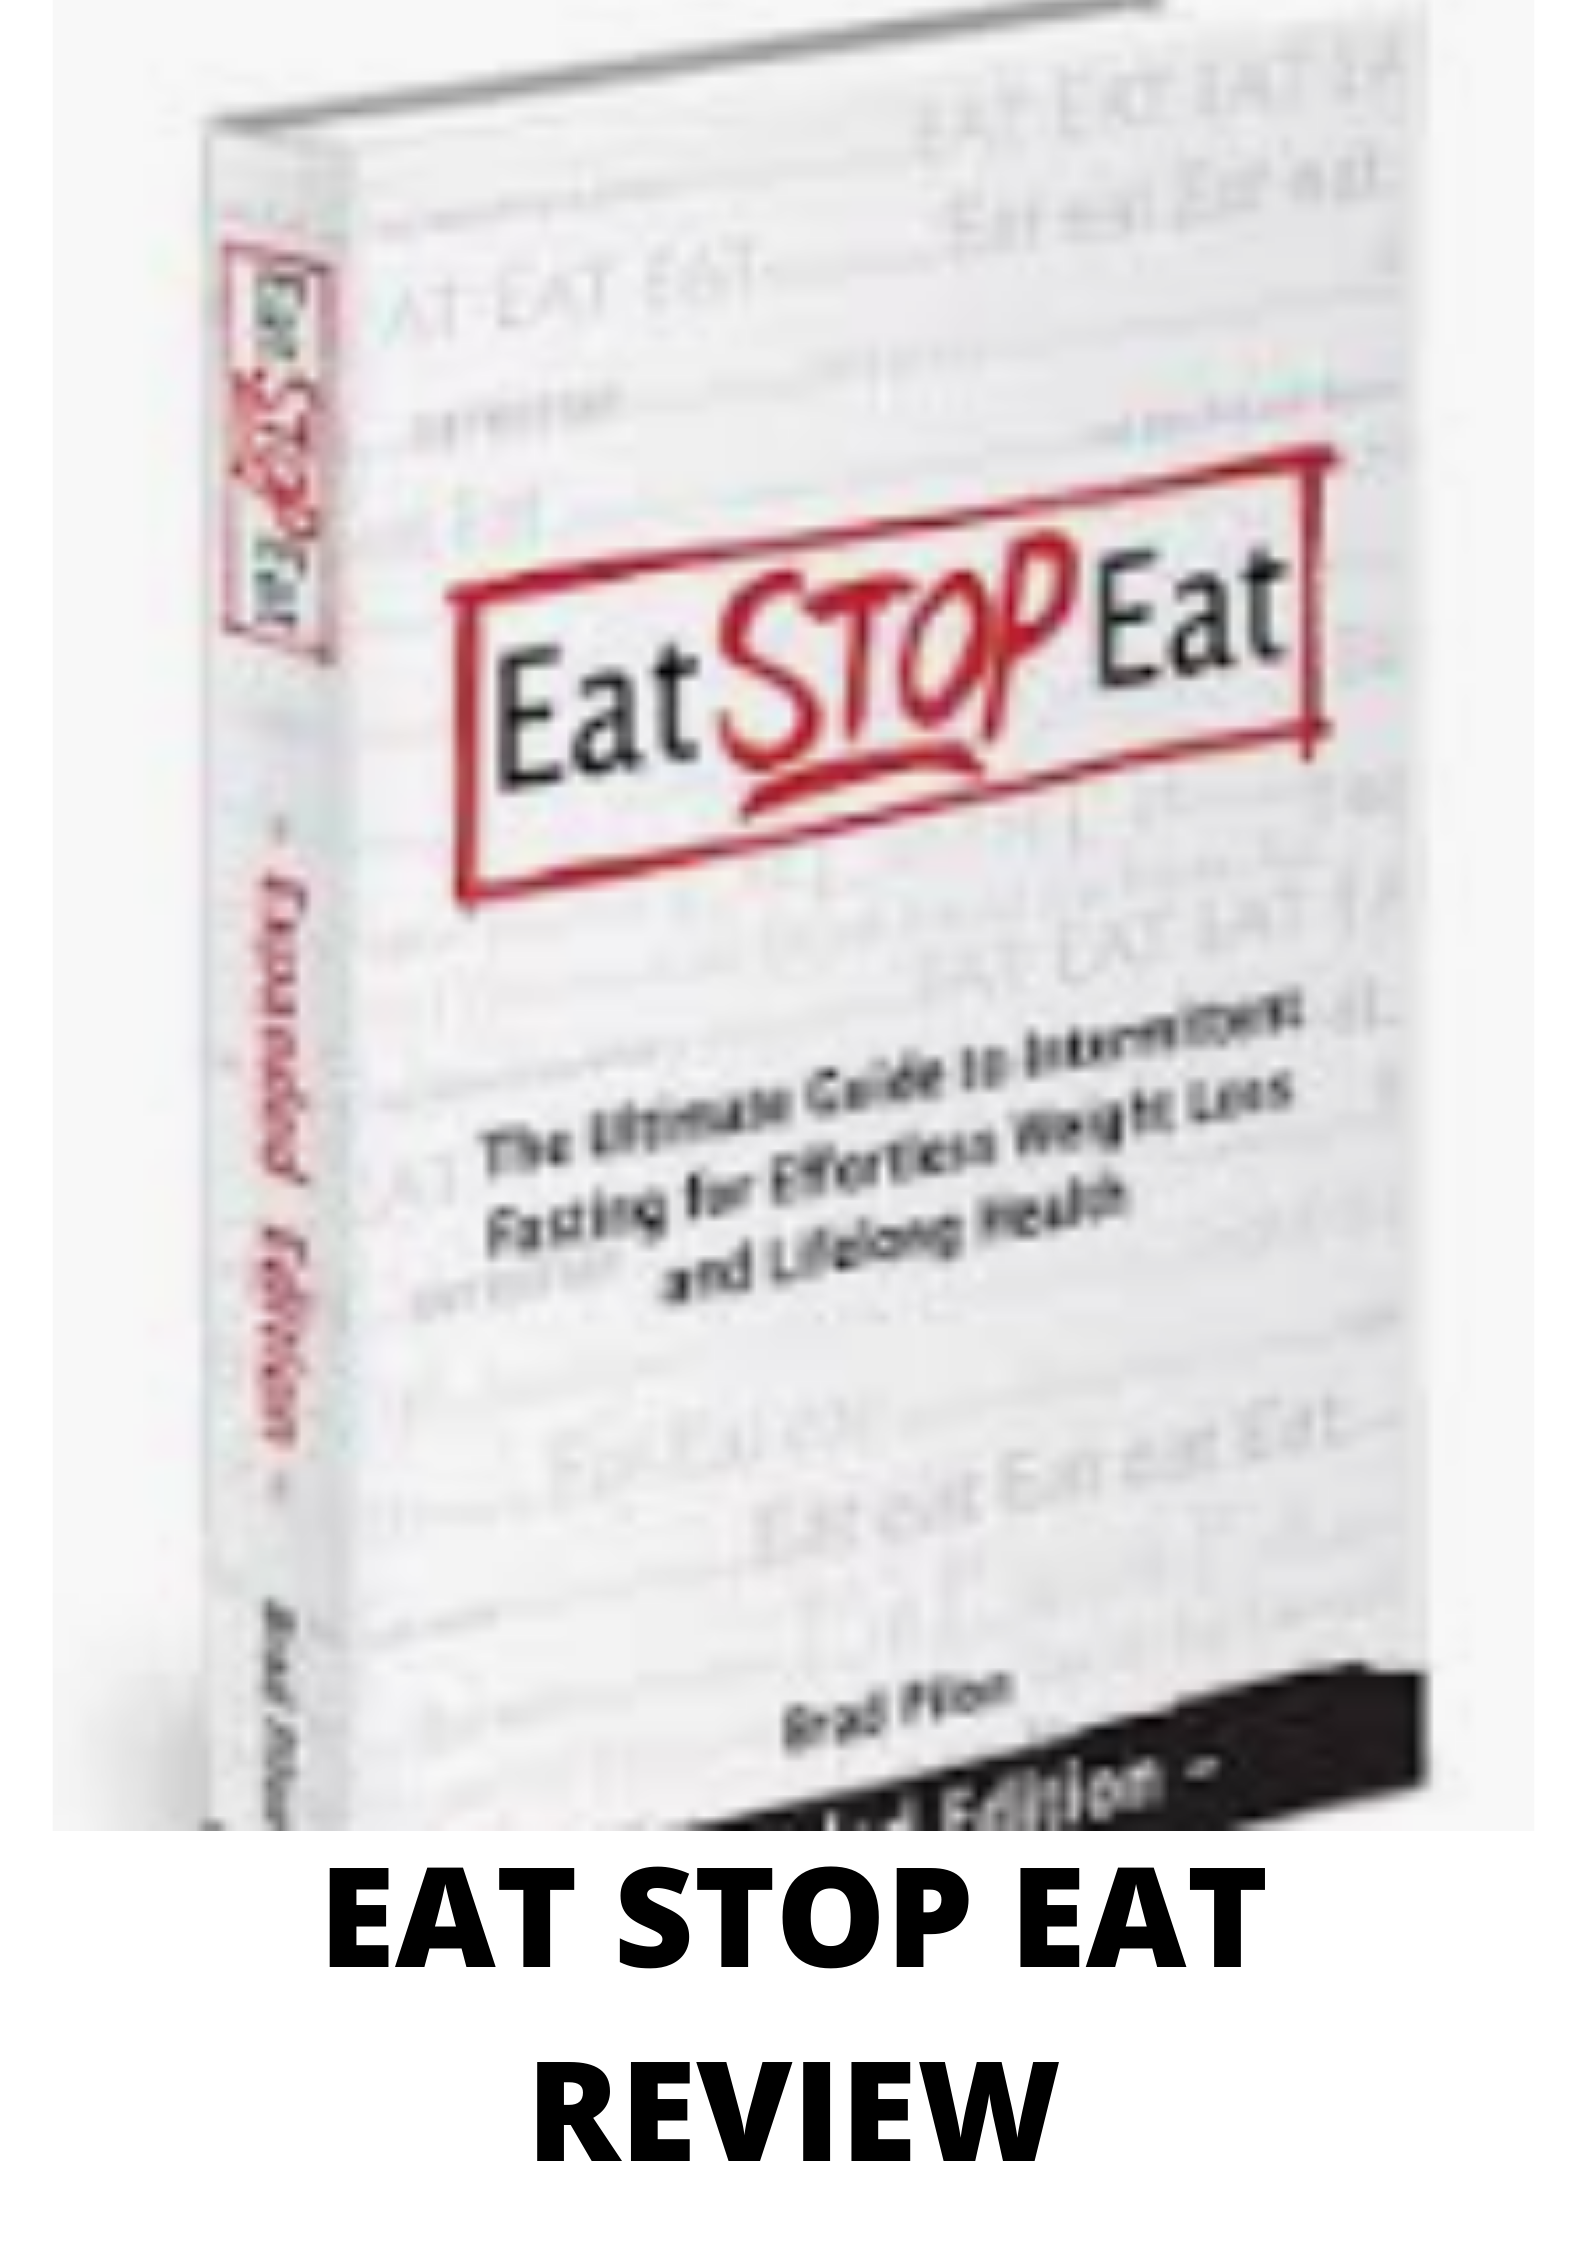 Eat stop eat review- is this a revolutionary program?